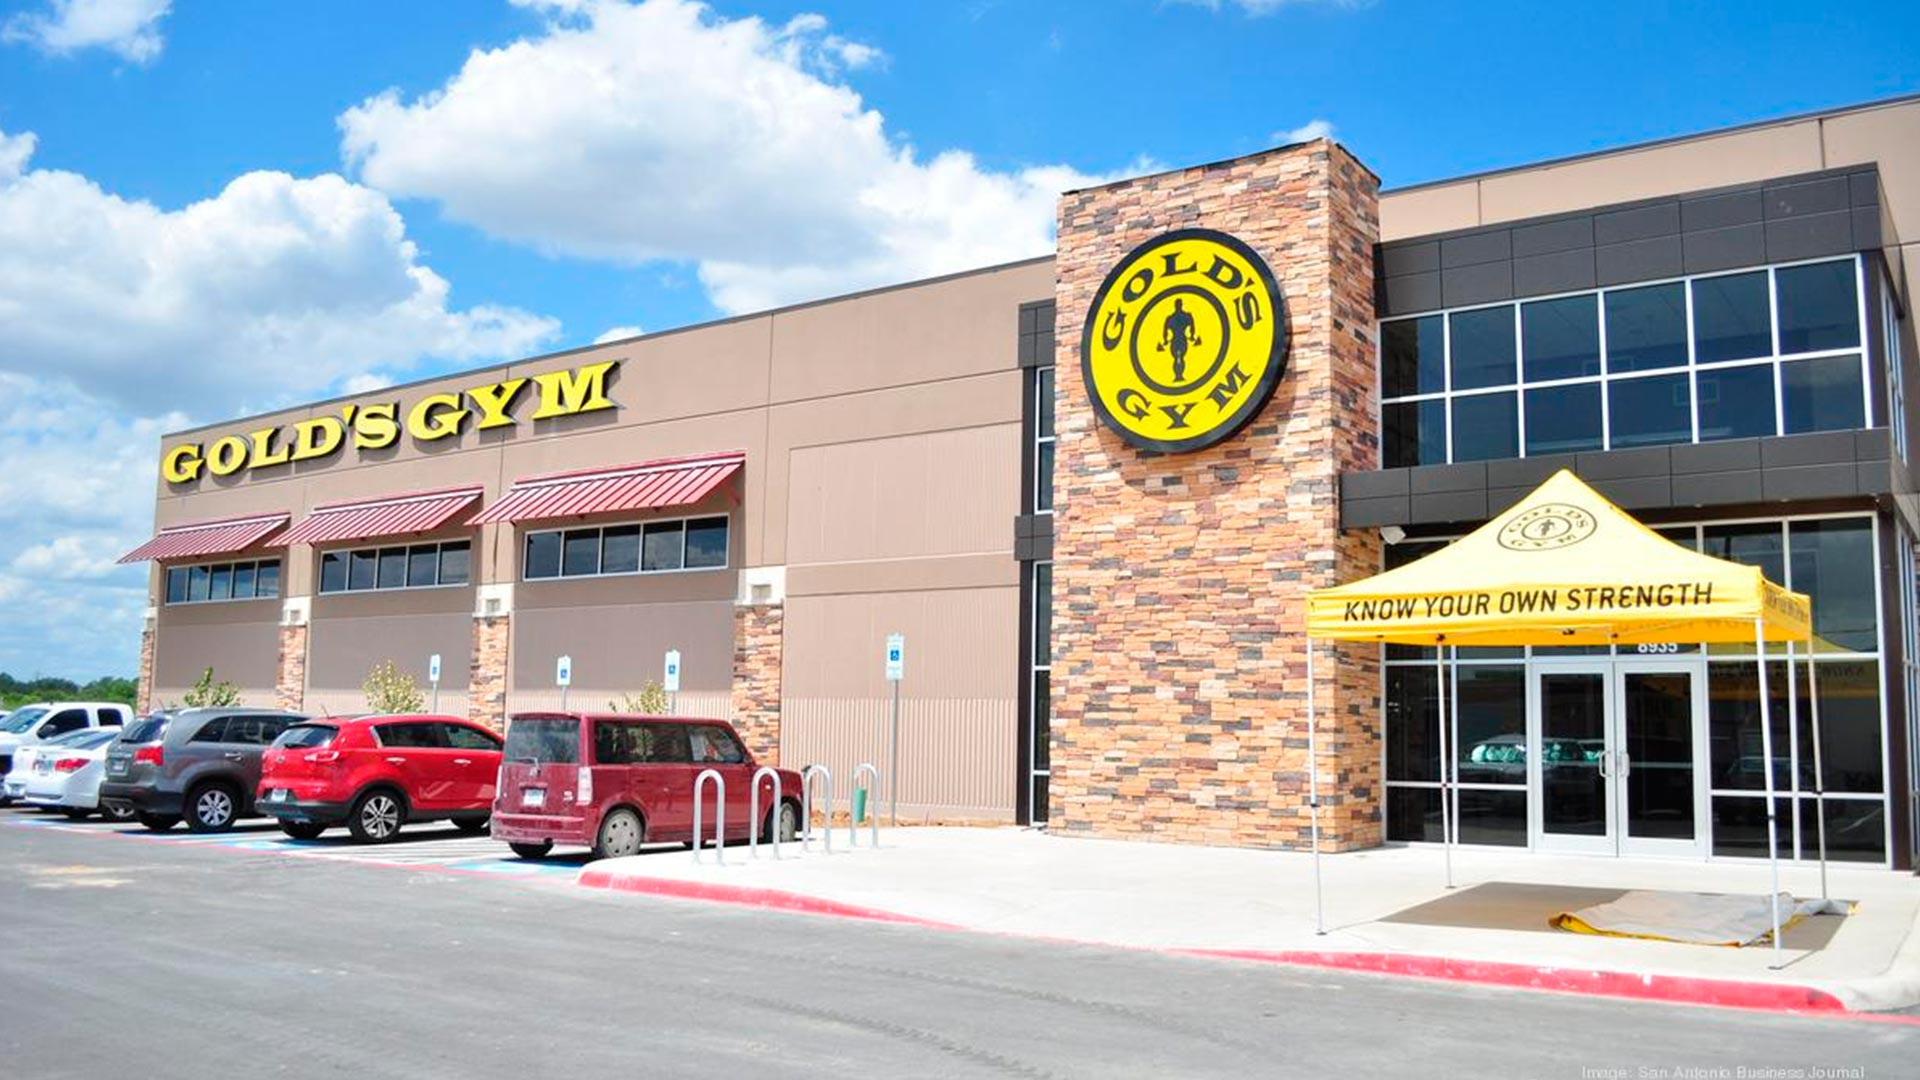 GOLD'S GYM - FIT PASSION .NET